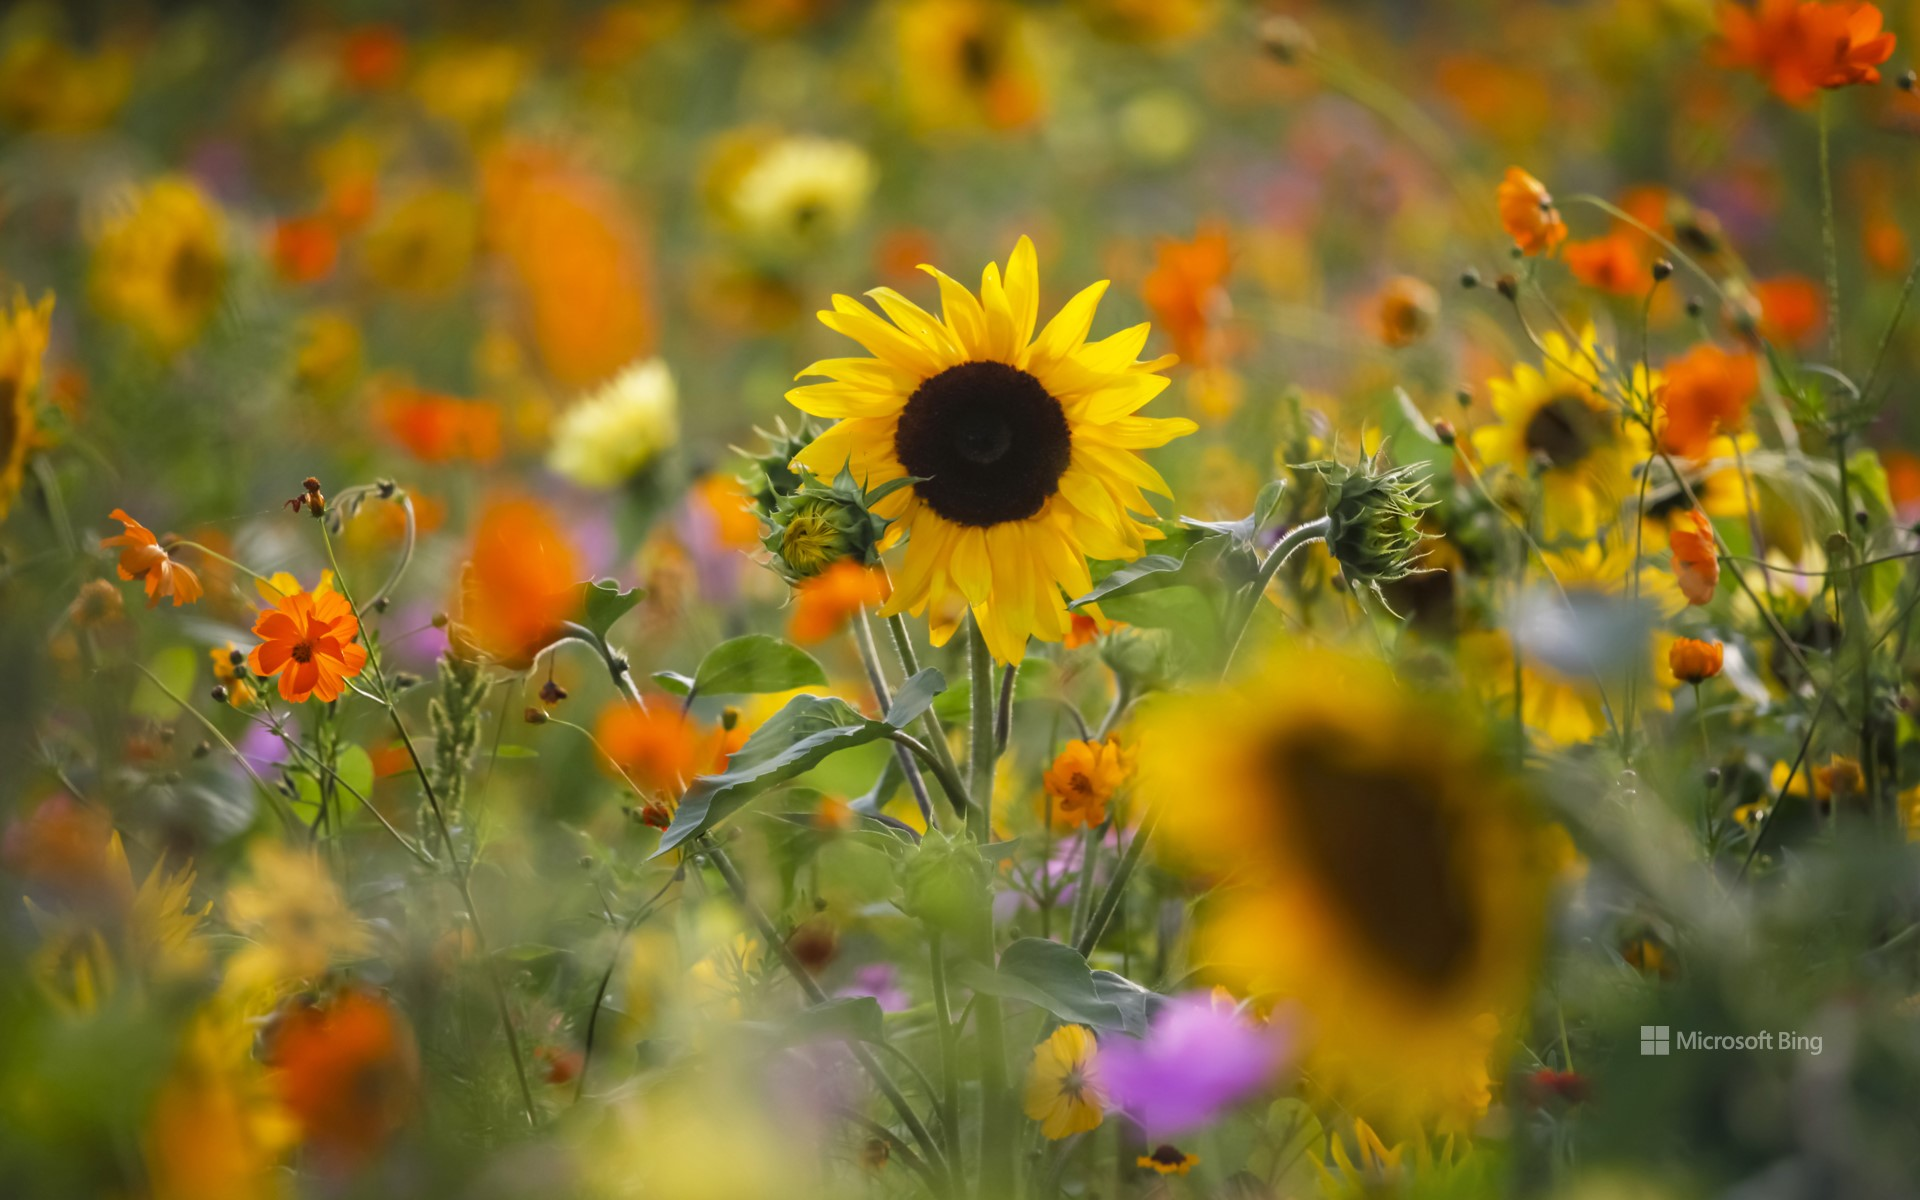 Summer meadow with sunflowers, Germany